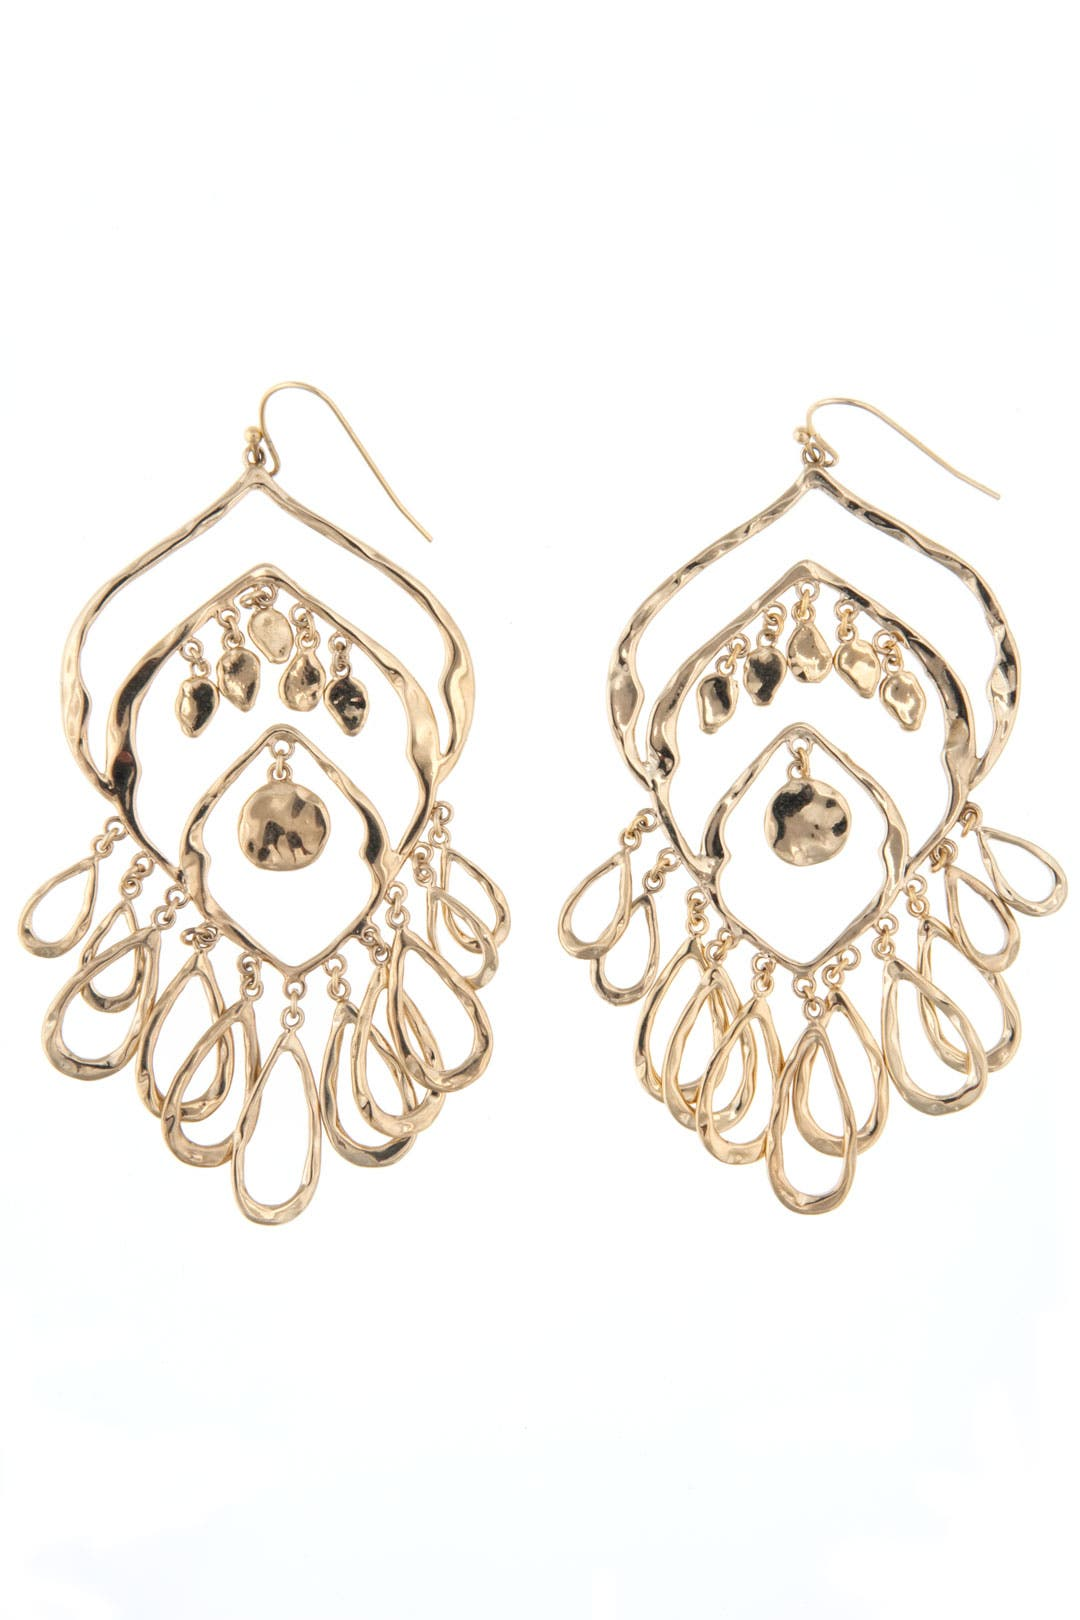 Solange Gold Chandelier Earrings by Lee Angel